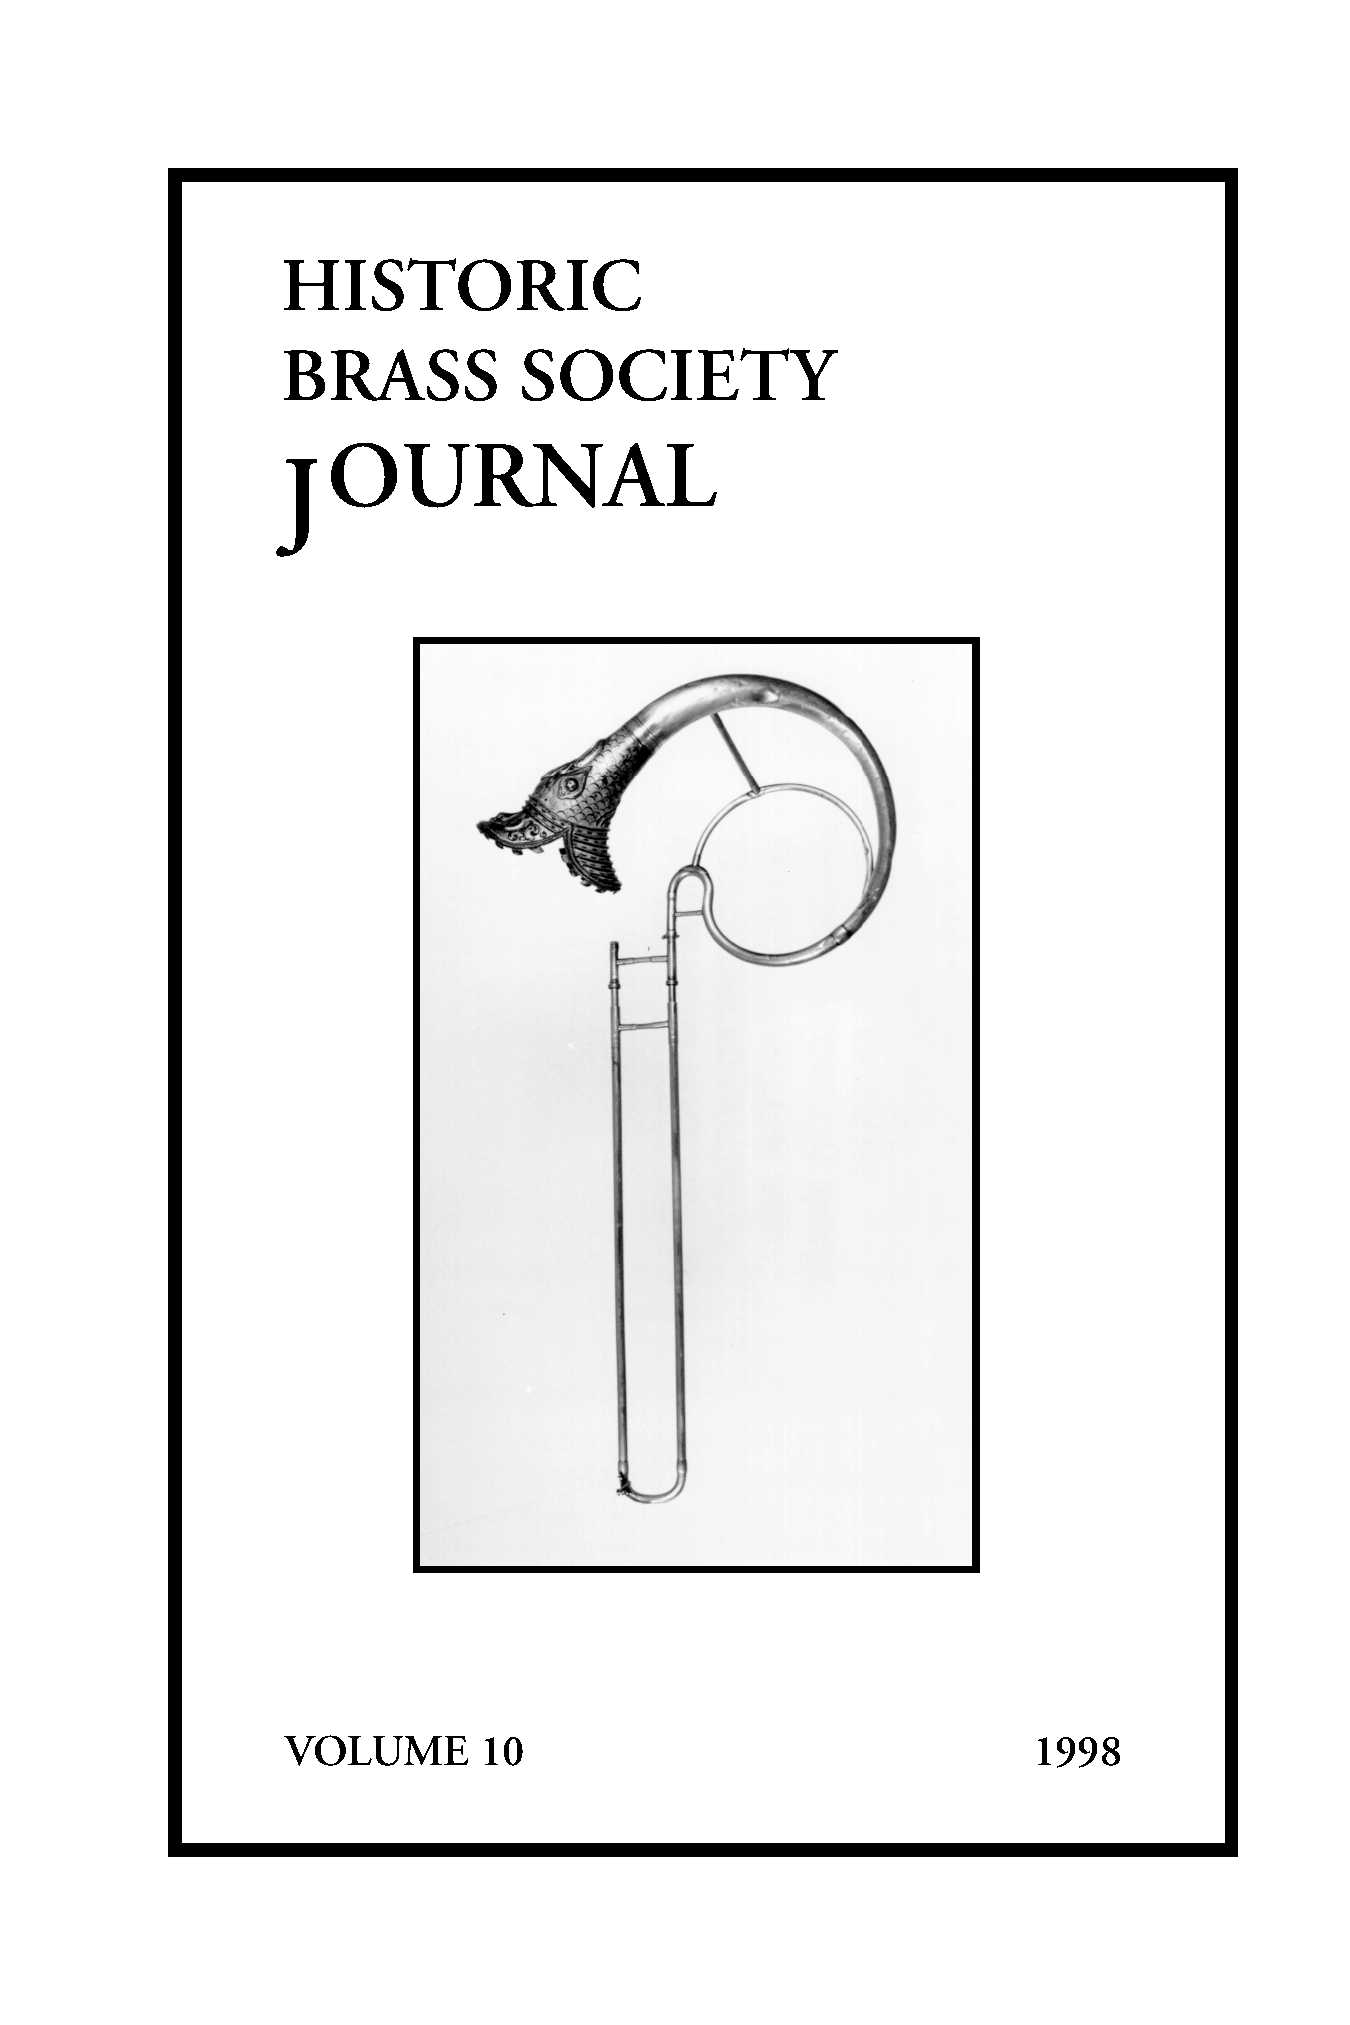 Historic Brass Journal - Volume 10 - 1998